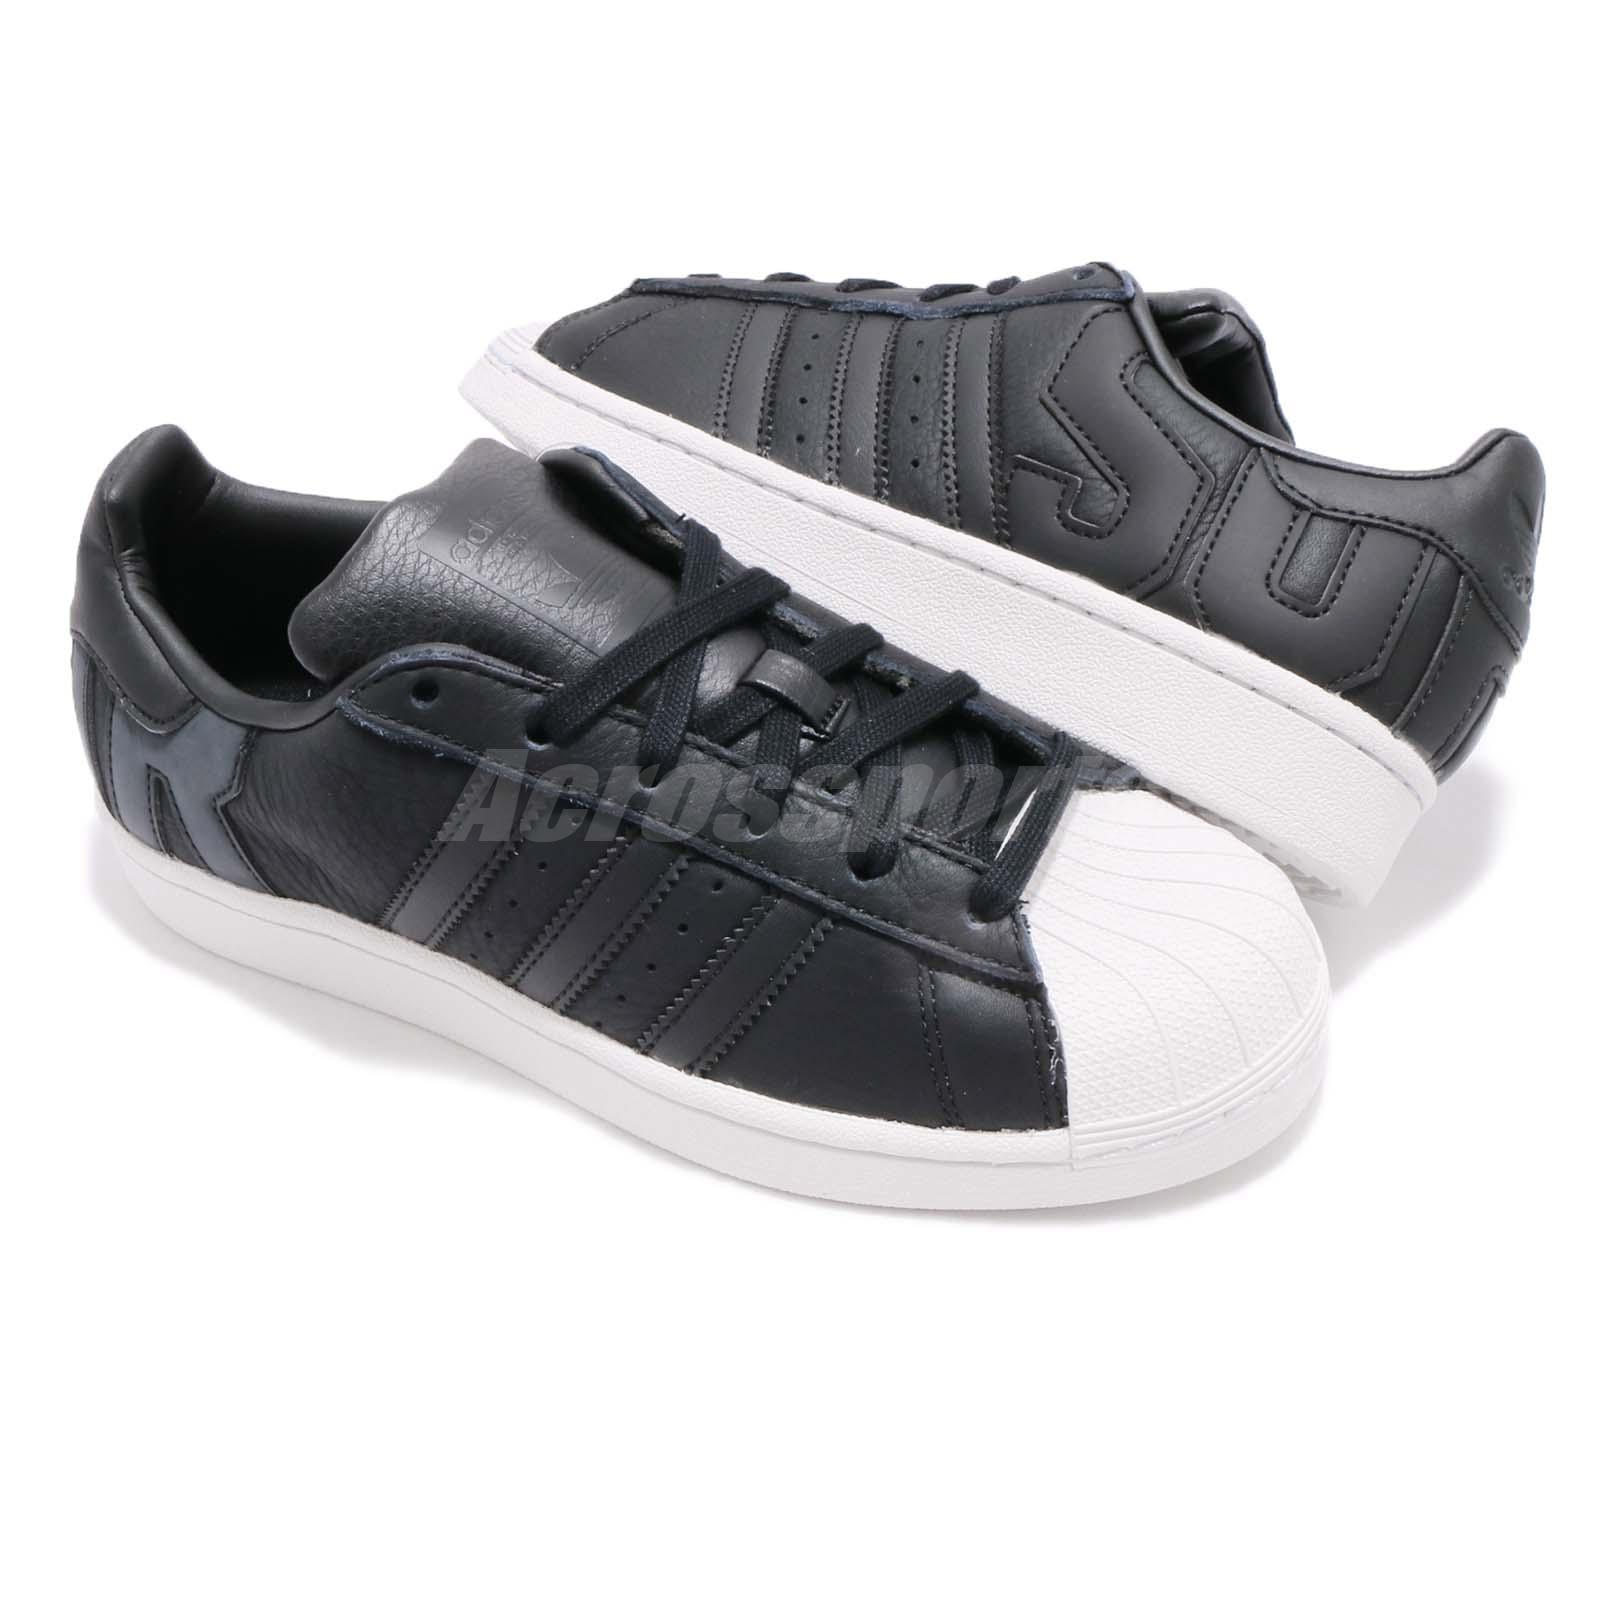 san francisco df180 c2611 adidas Originals Superstar Big Logo Black White Men Women Casual ...